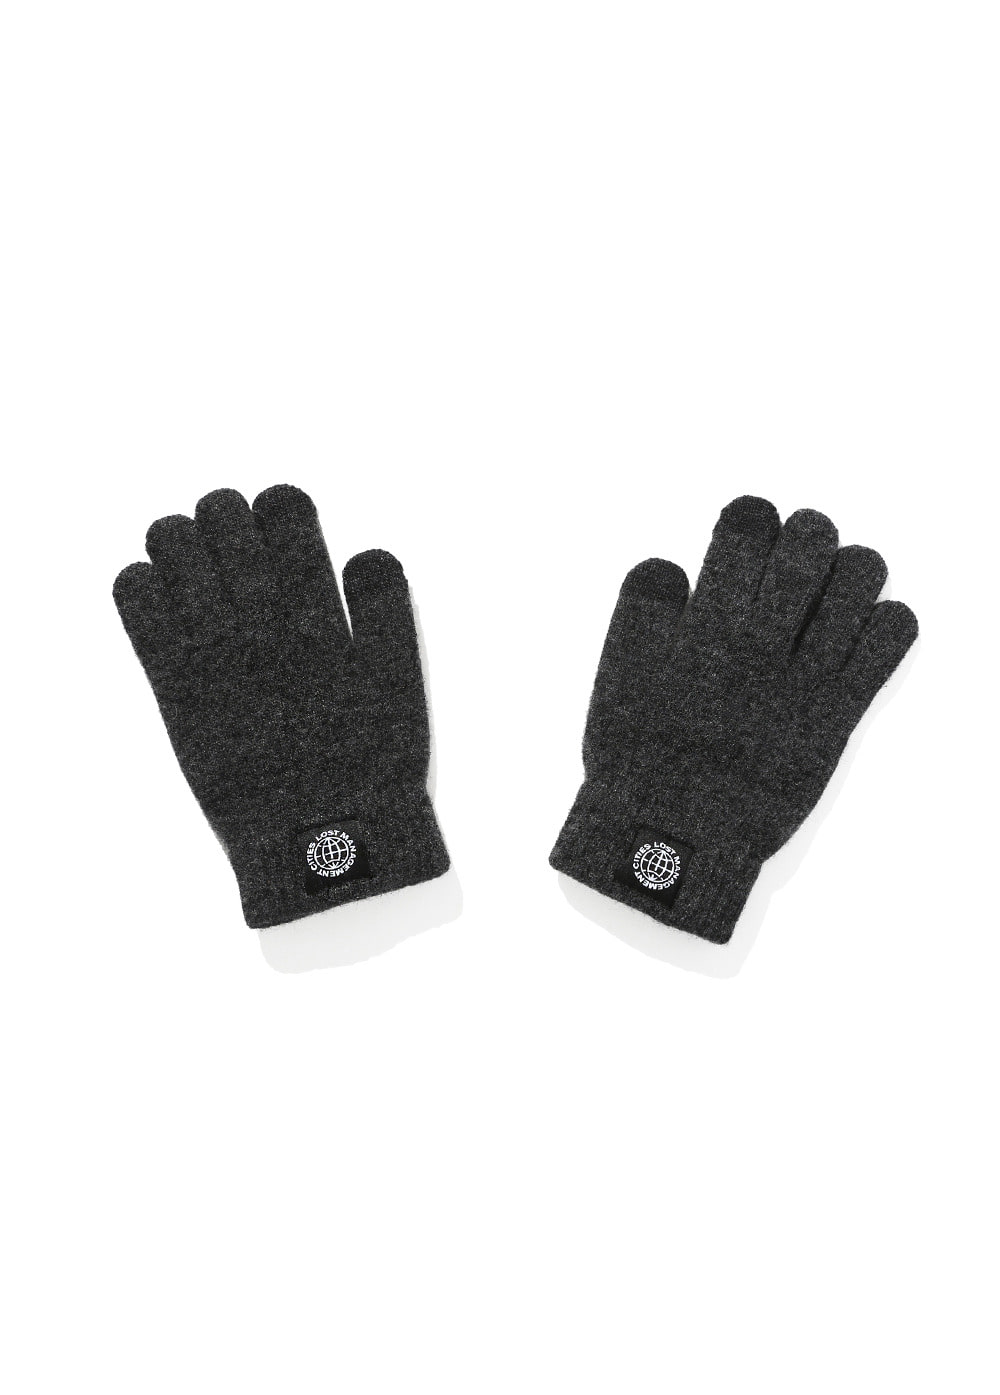 LMC SMART TOUCH KNIT GLOVE charcoal